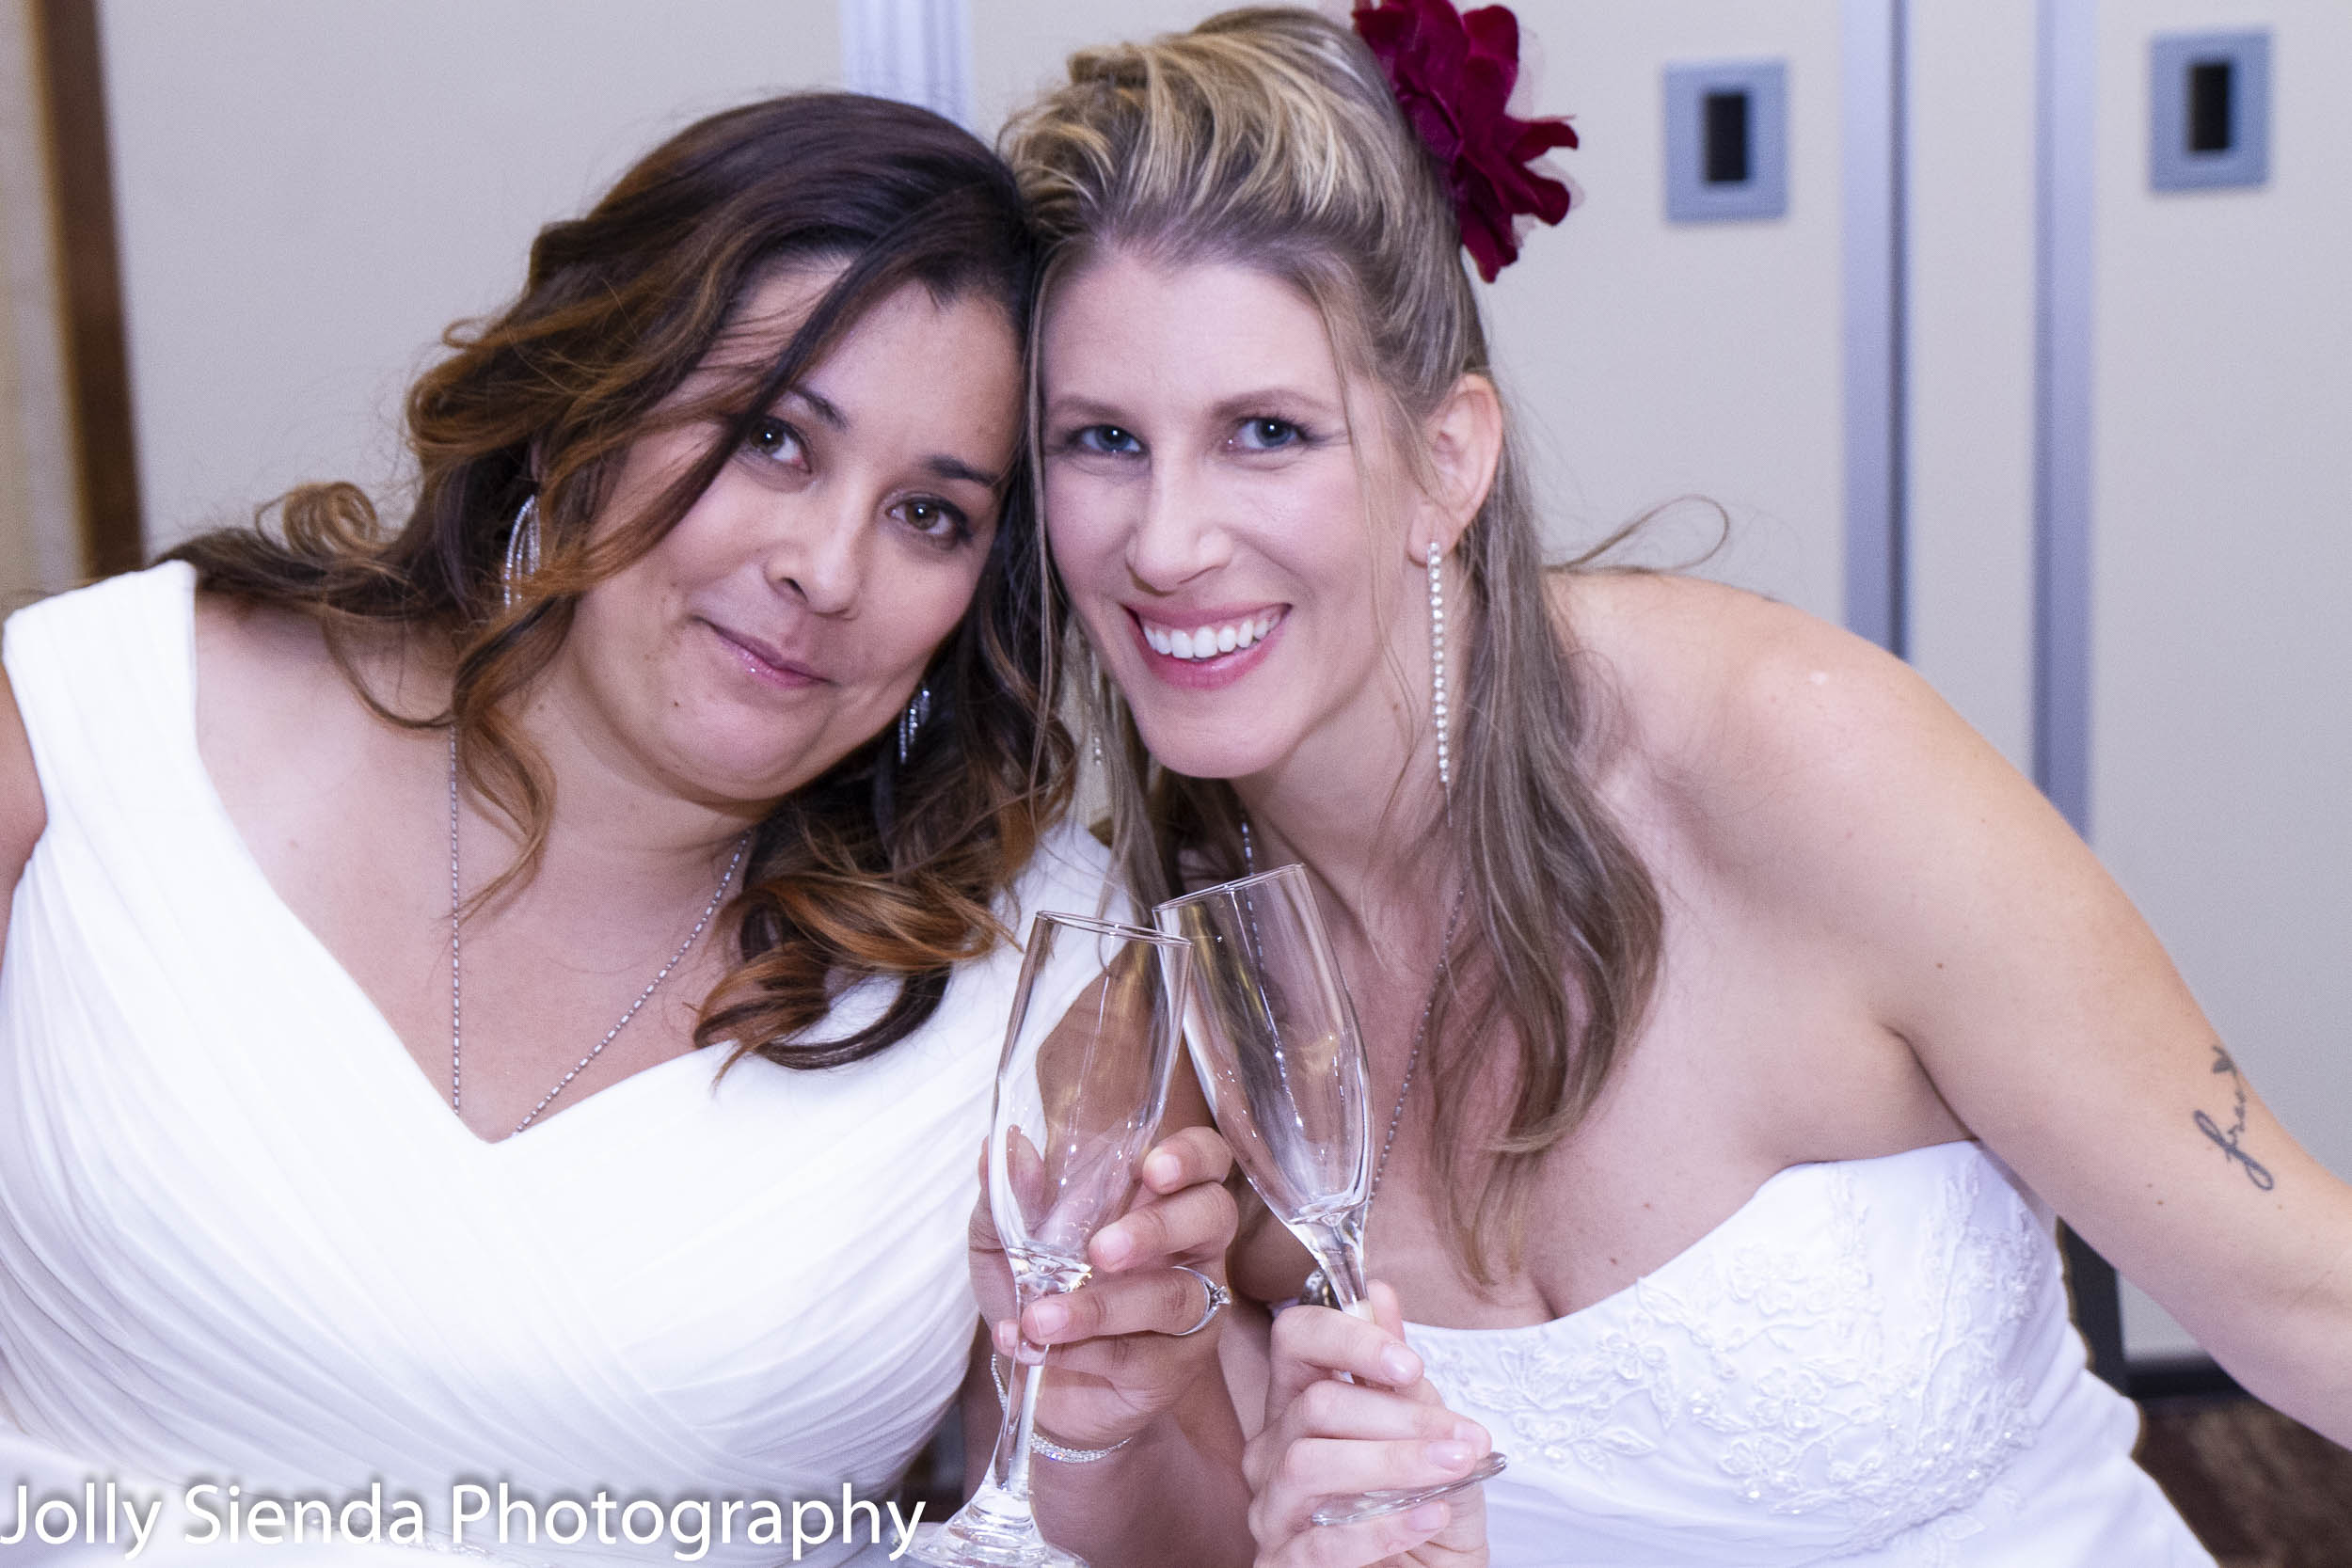 Simply lovely — we're so very happy for Michelle and Nicole! Cheers!